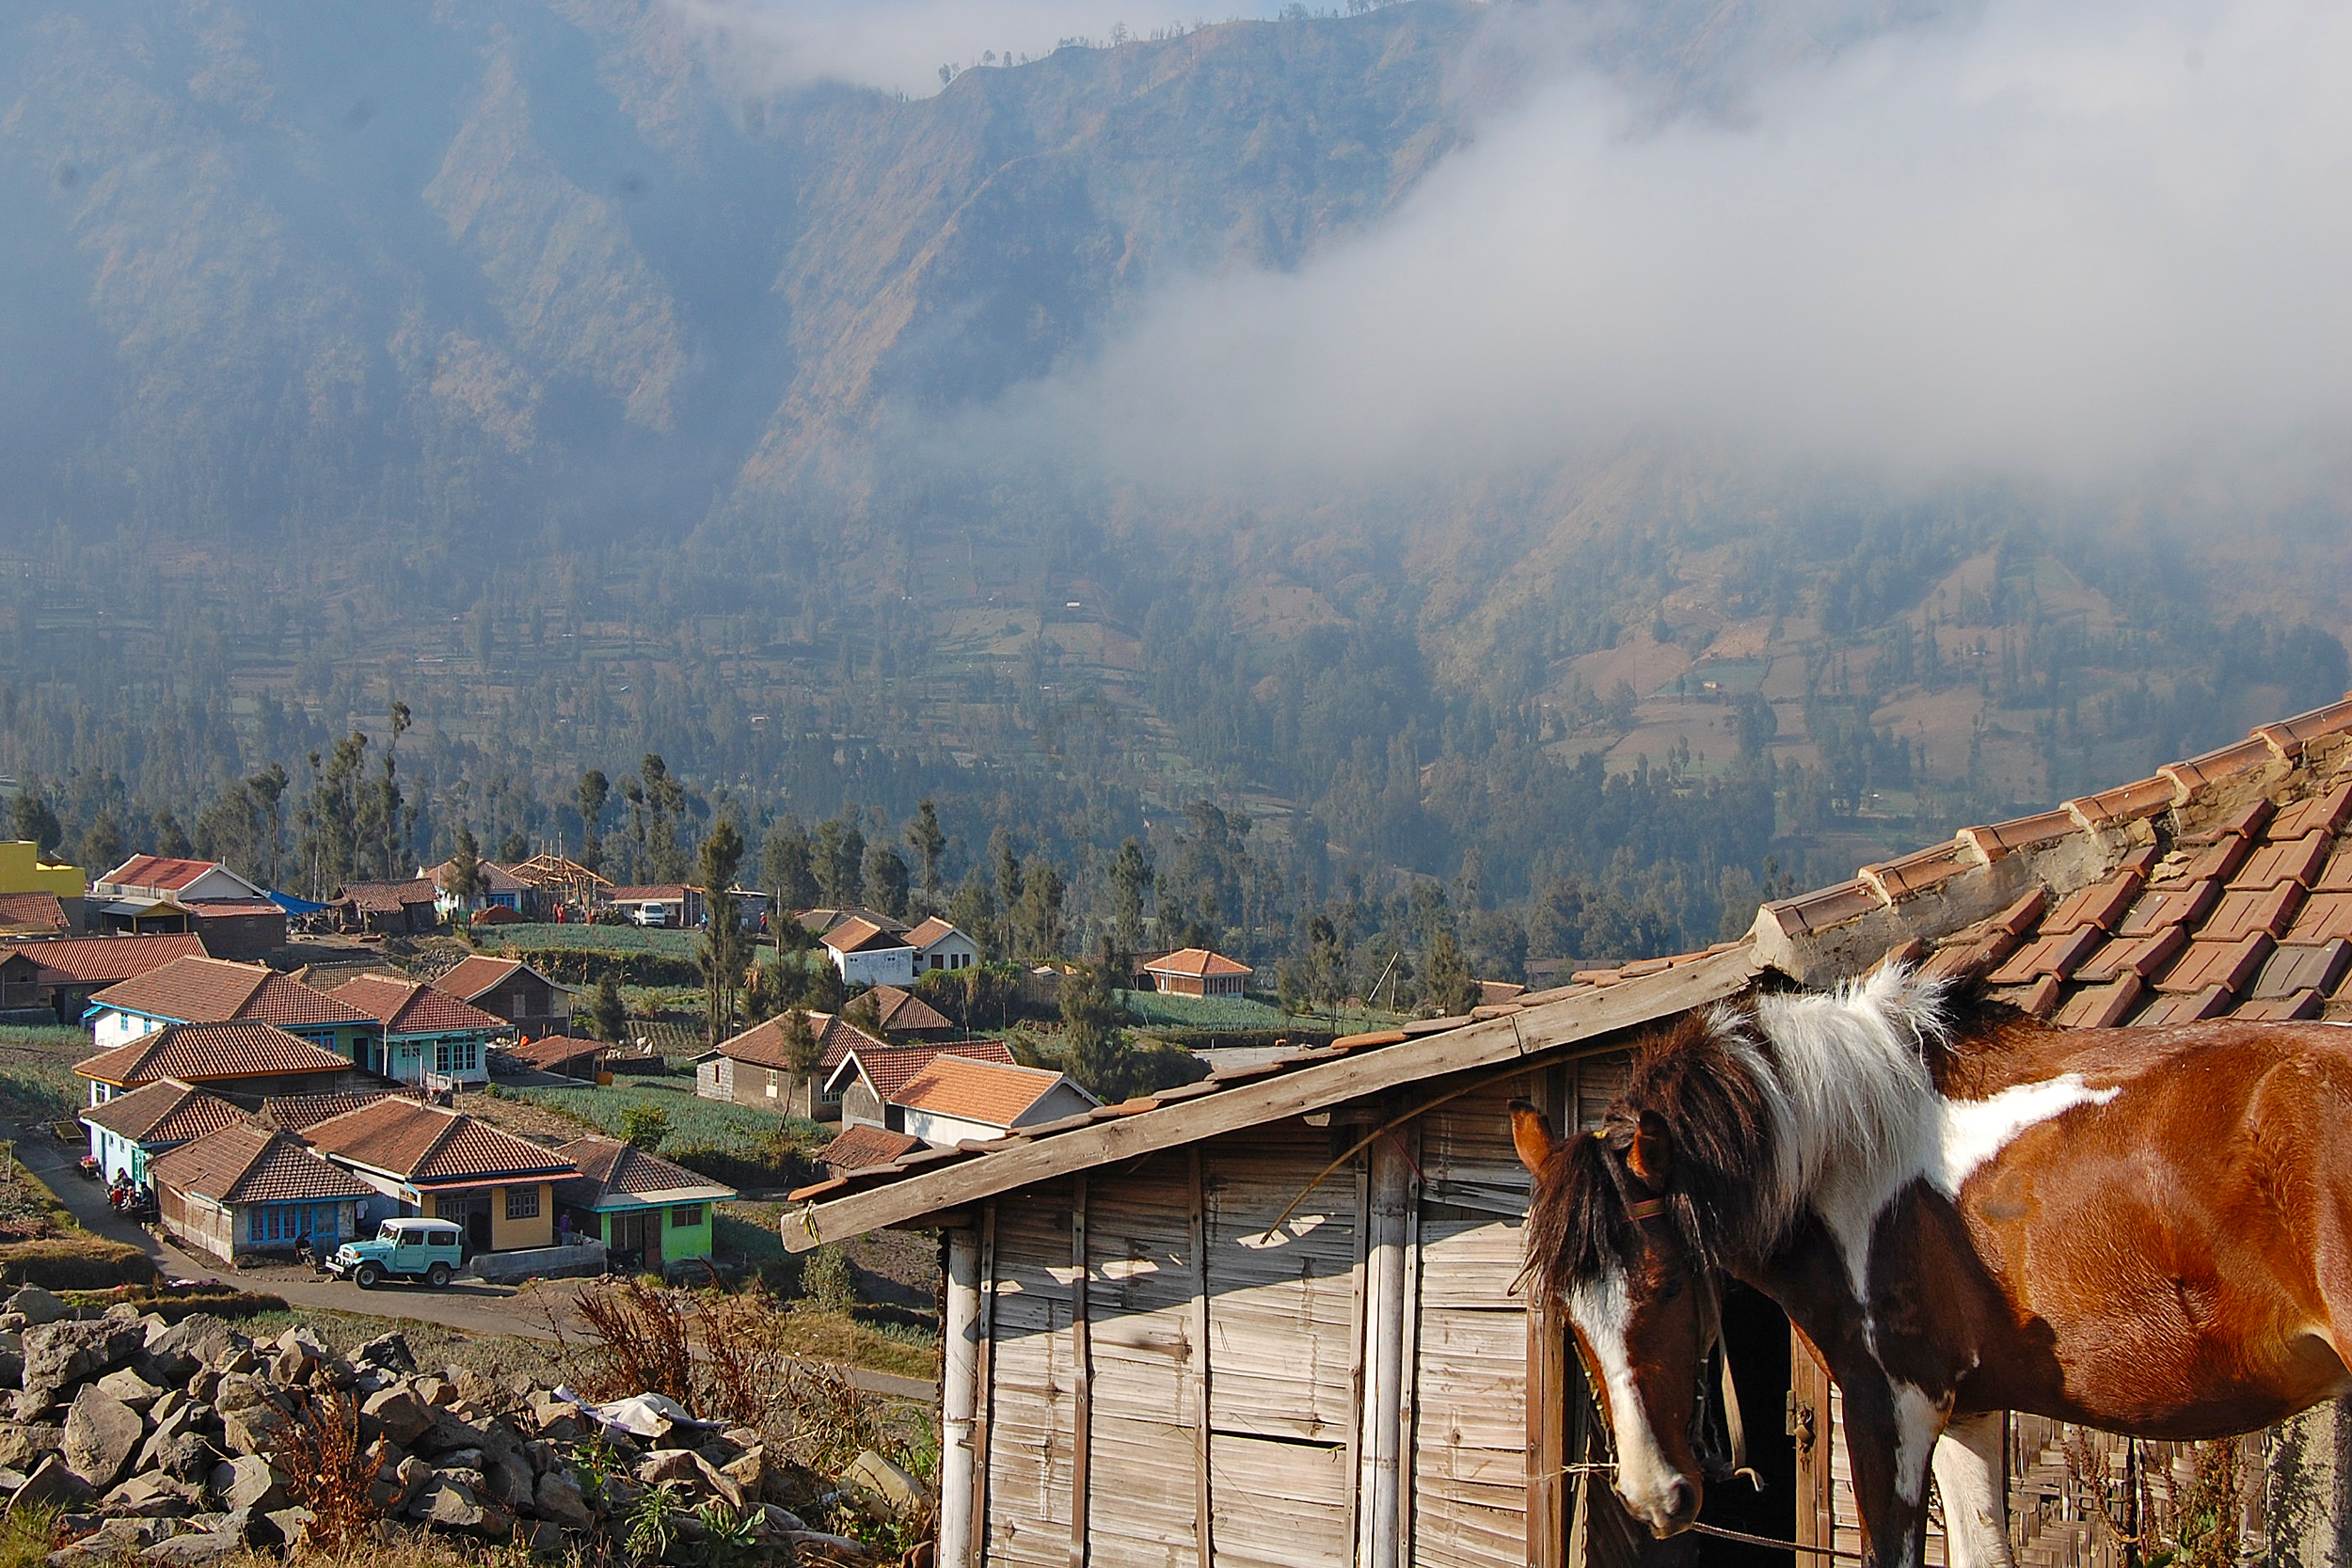 A horse among houses in the mountains